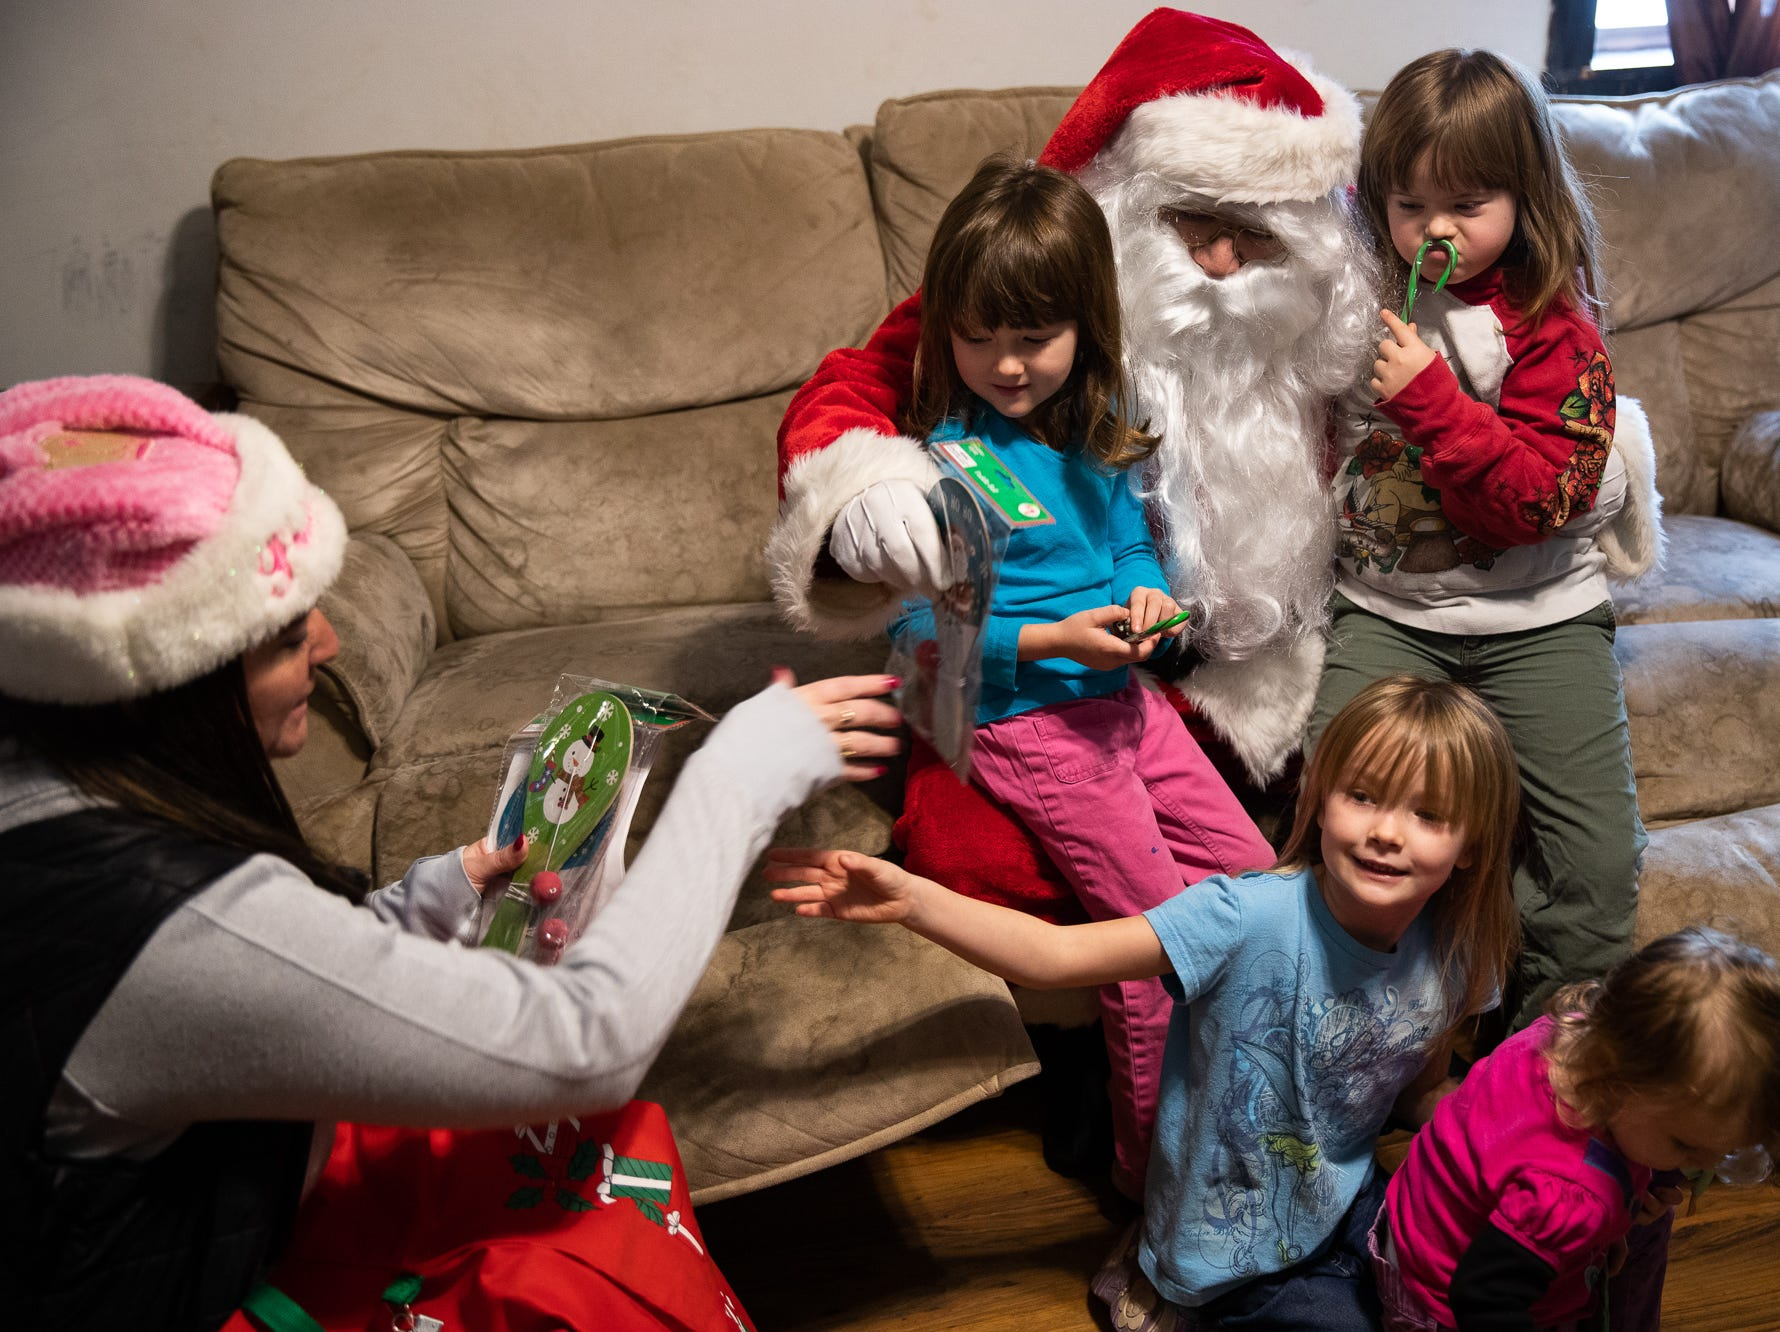 Mia, 4, back left, Sierra, 7, back right, Laila, 6, front left, and Arianna, 2, front right, get presents from Santa, played by firefighter Wayne Reid, during the S.A.V.E.S Project Santa, Saturday, Dec. 22, 2018, in McSherrystown Borough. The S.A.V.E.S Project Santa donated food, toys, and clothing to 12 local families in need.